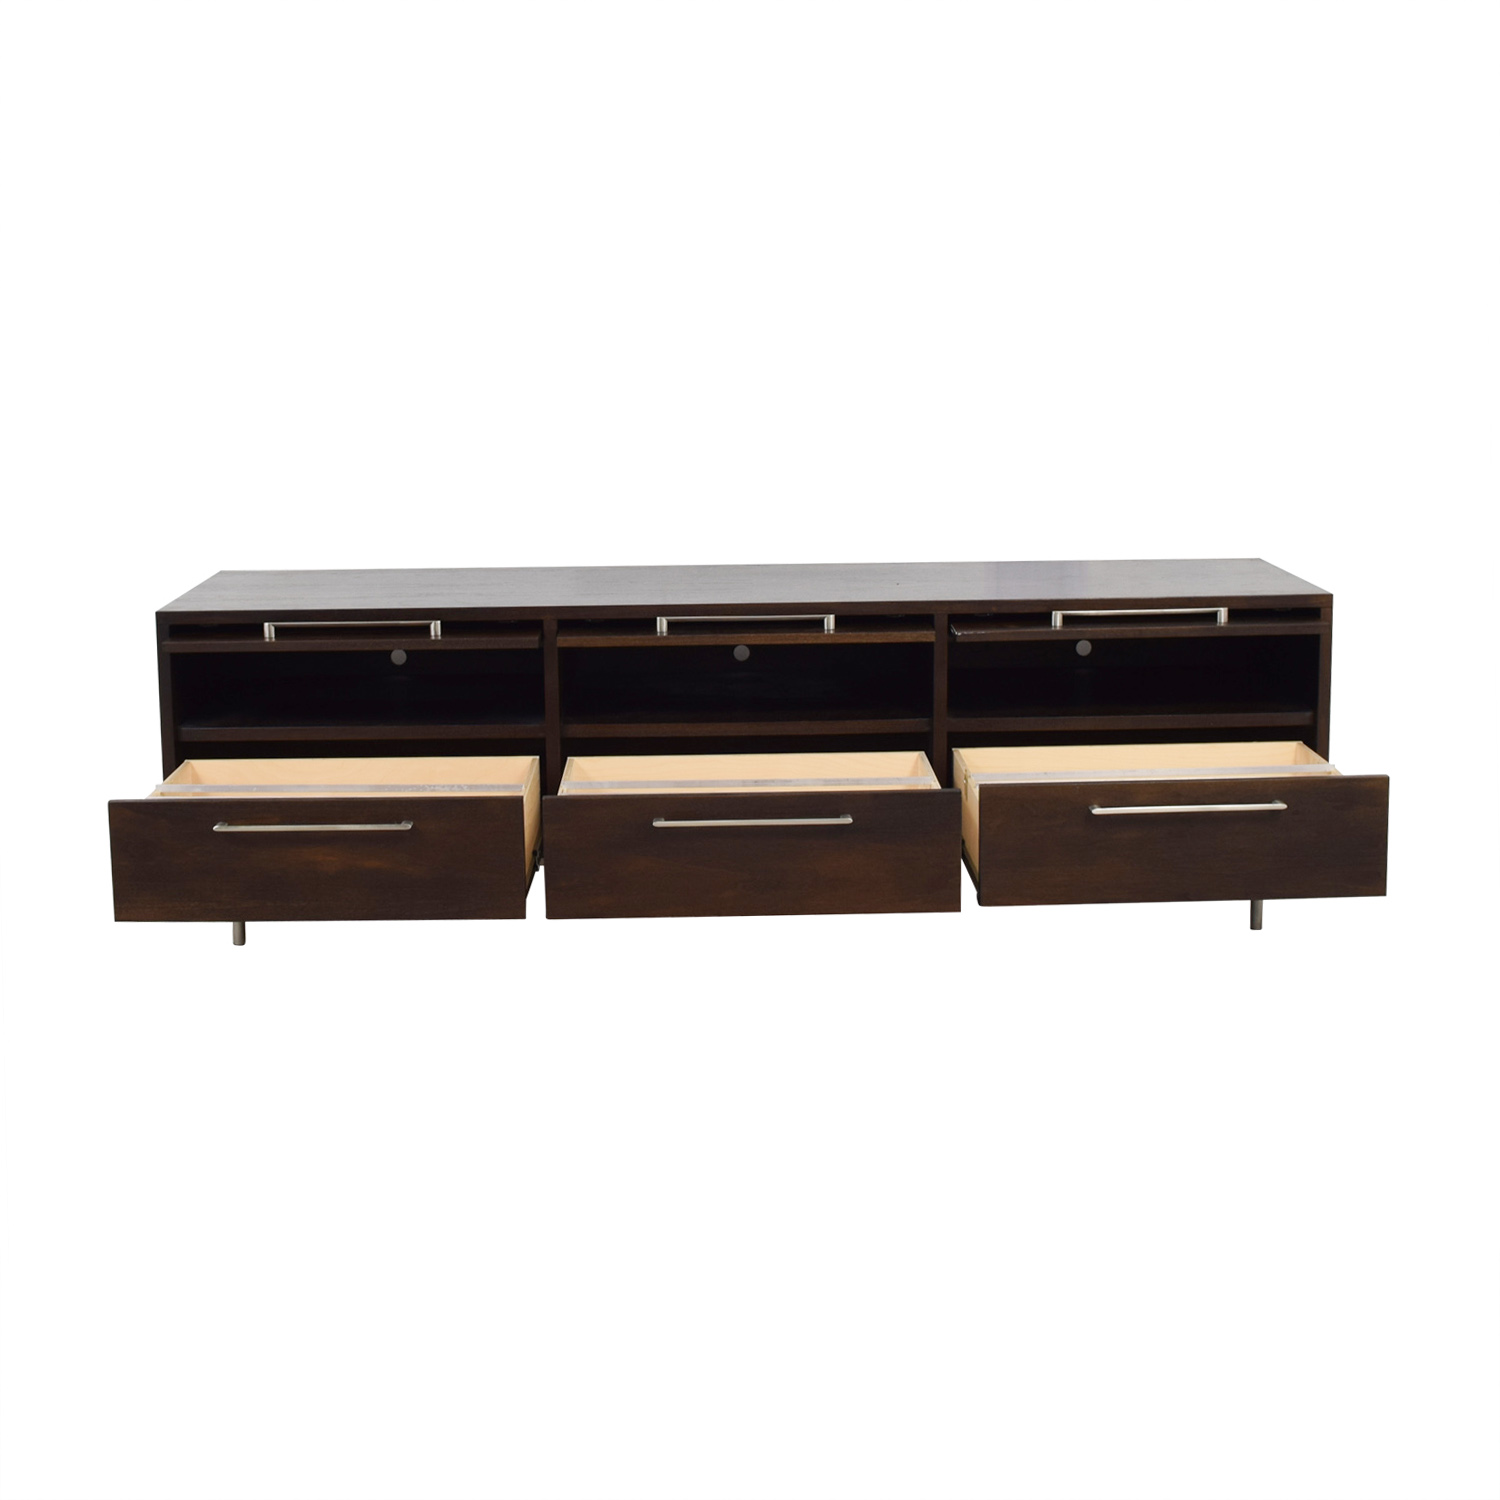 Room & Board Room & Board Zurich Three-Drawer Media Console used